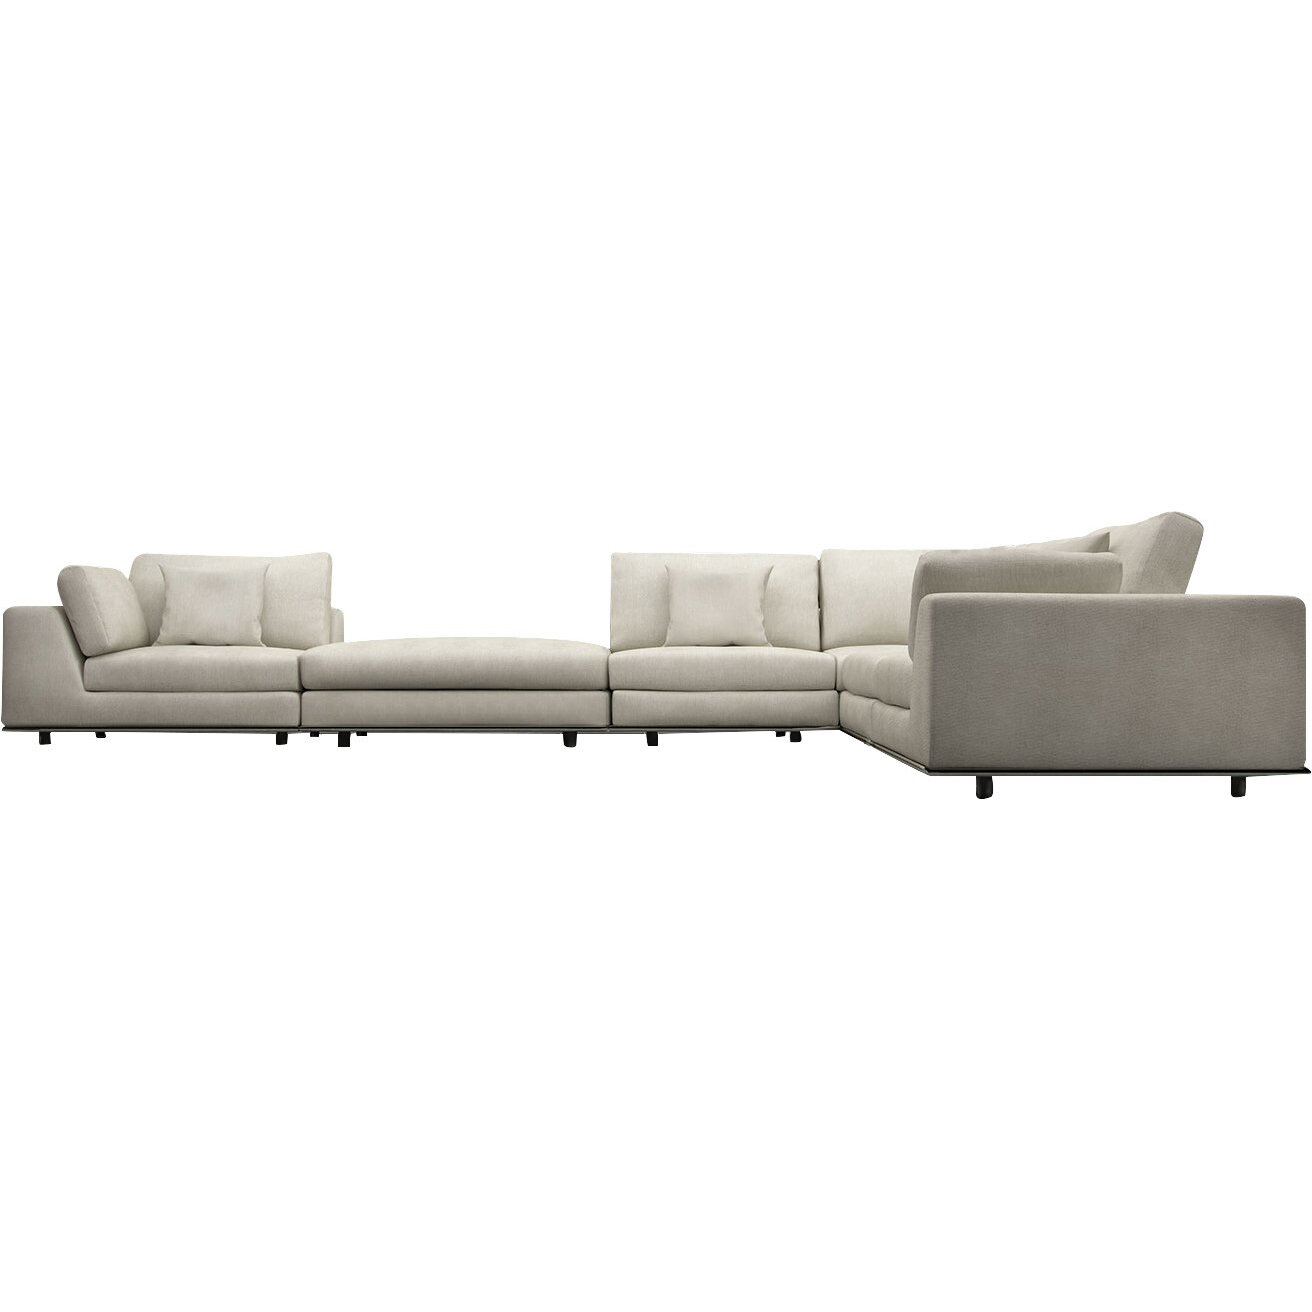 Perry sectional with ottoman reviews allmodern